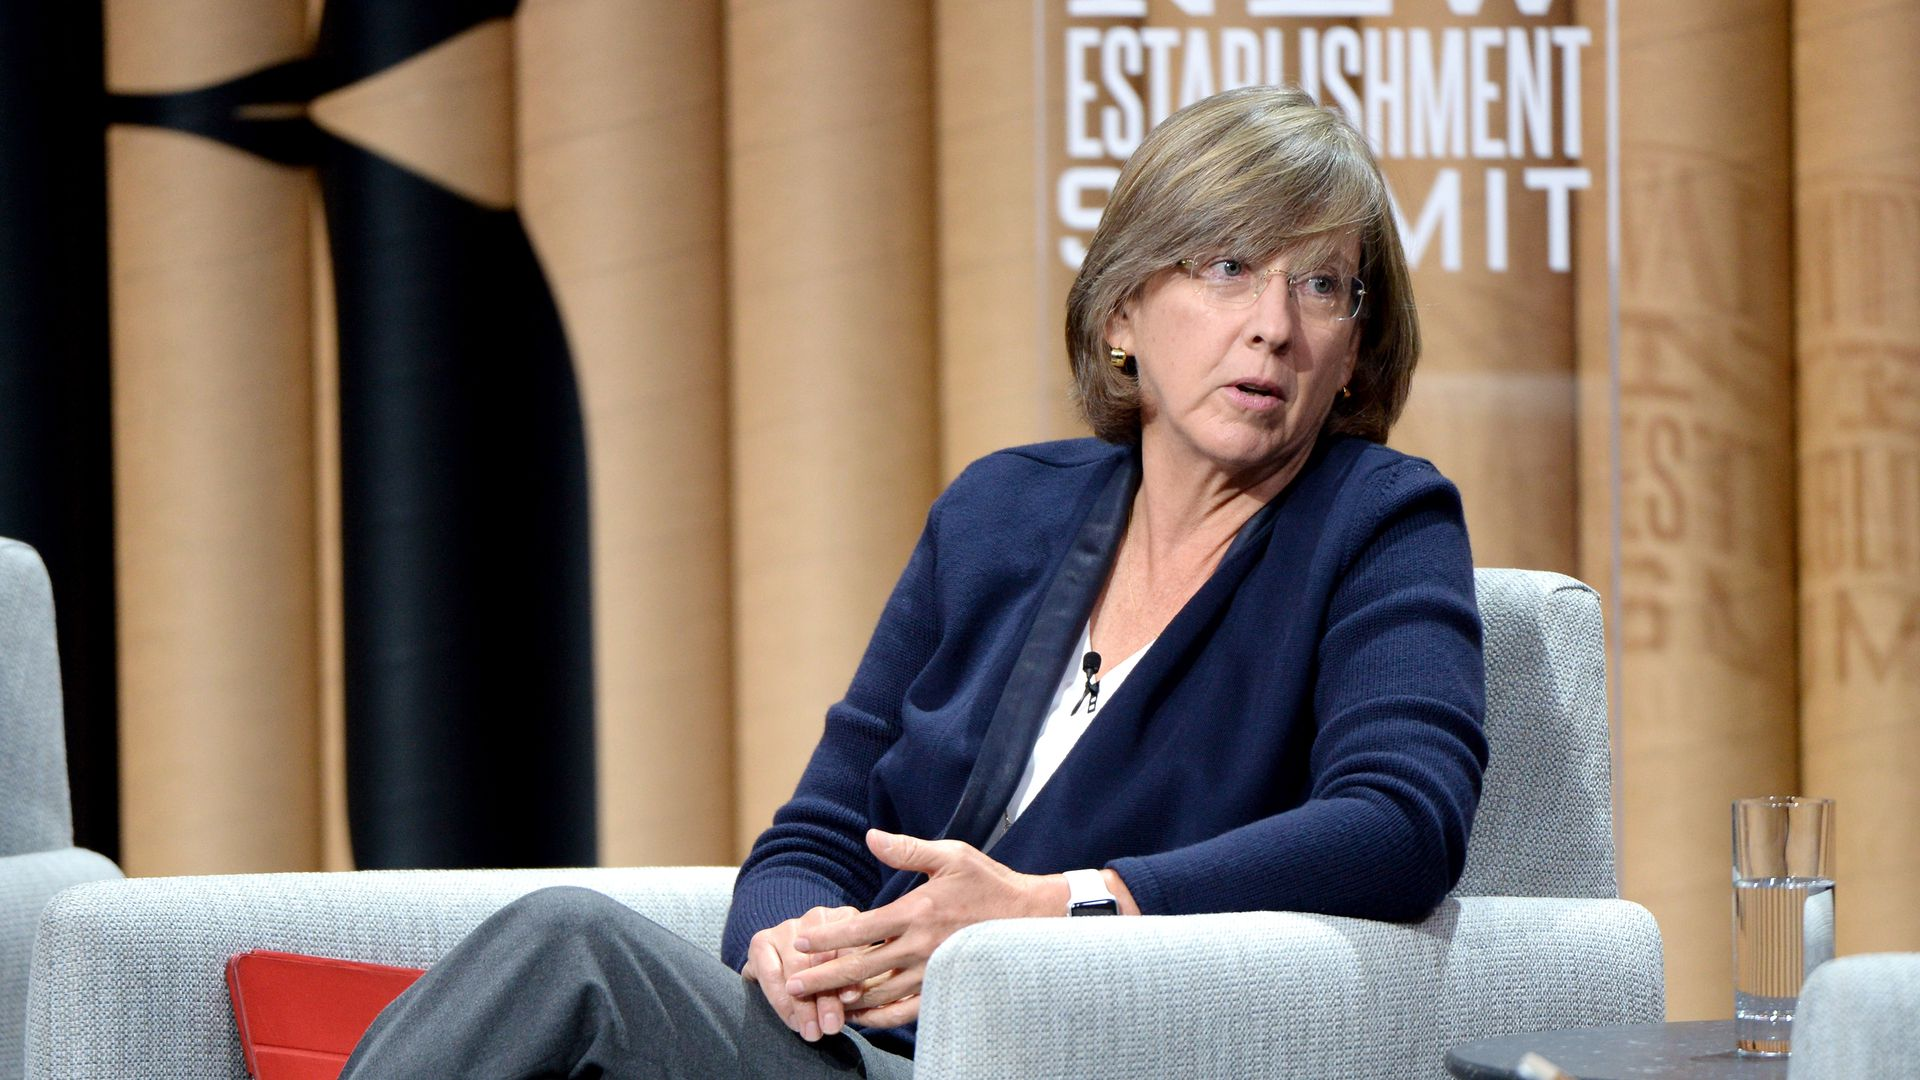 Mary Meeker speaking at a Vanity Fair conference.